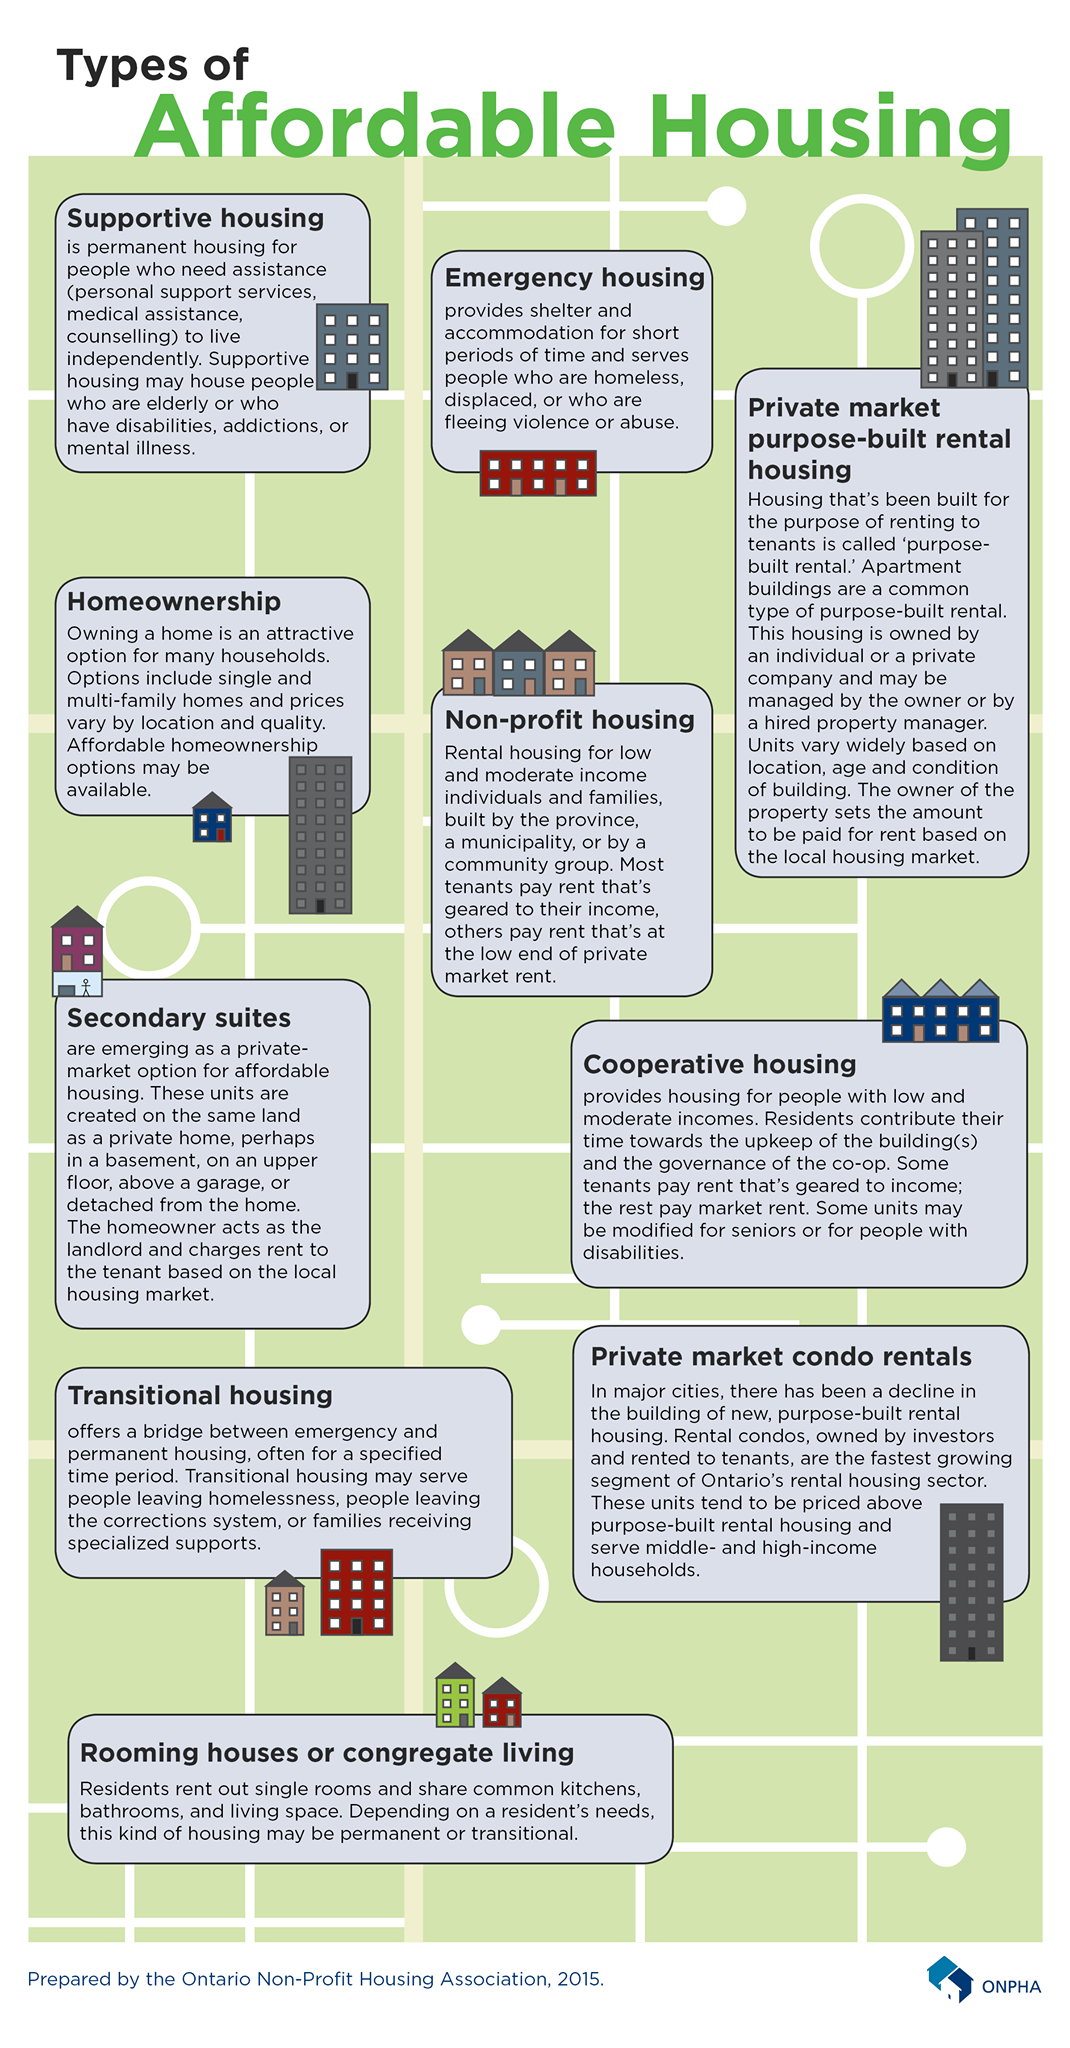 Types Of Affordable Housing Infographic From The Ontario Non